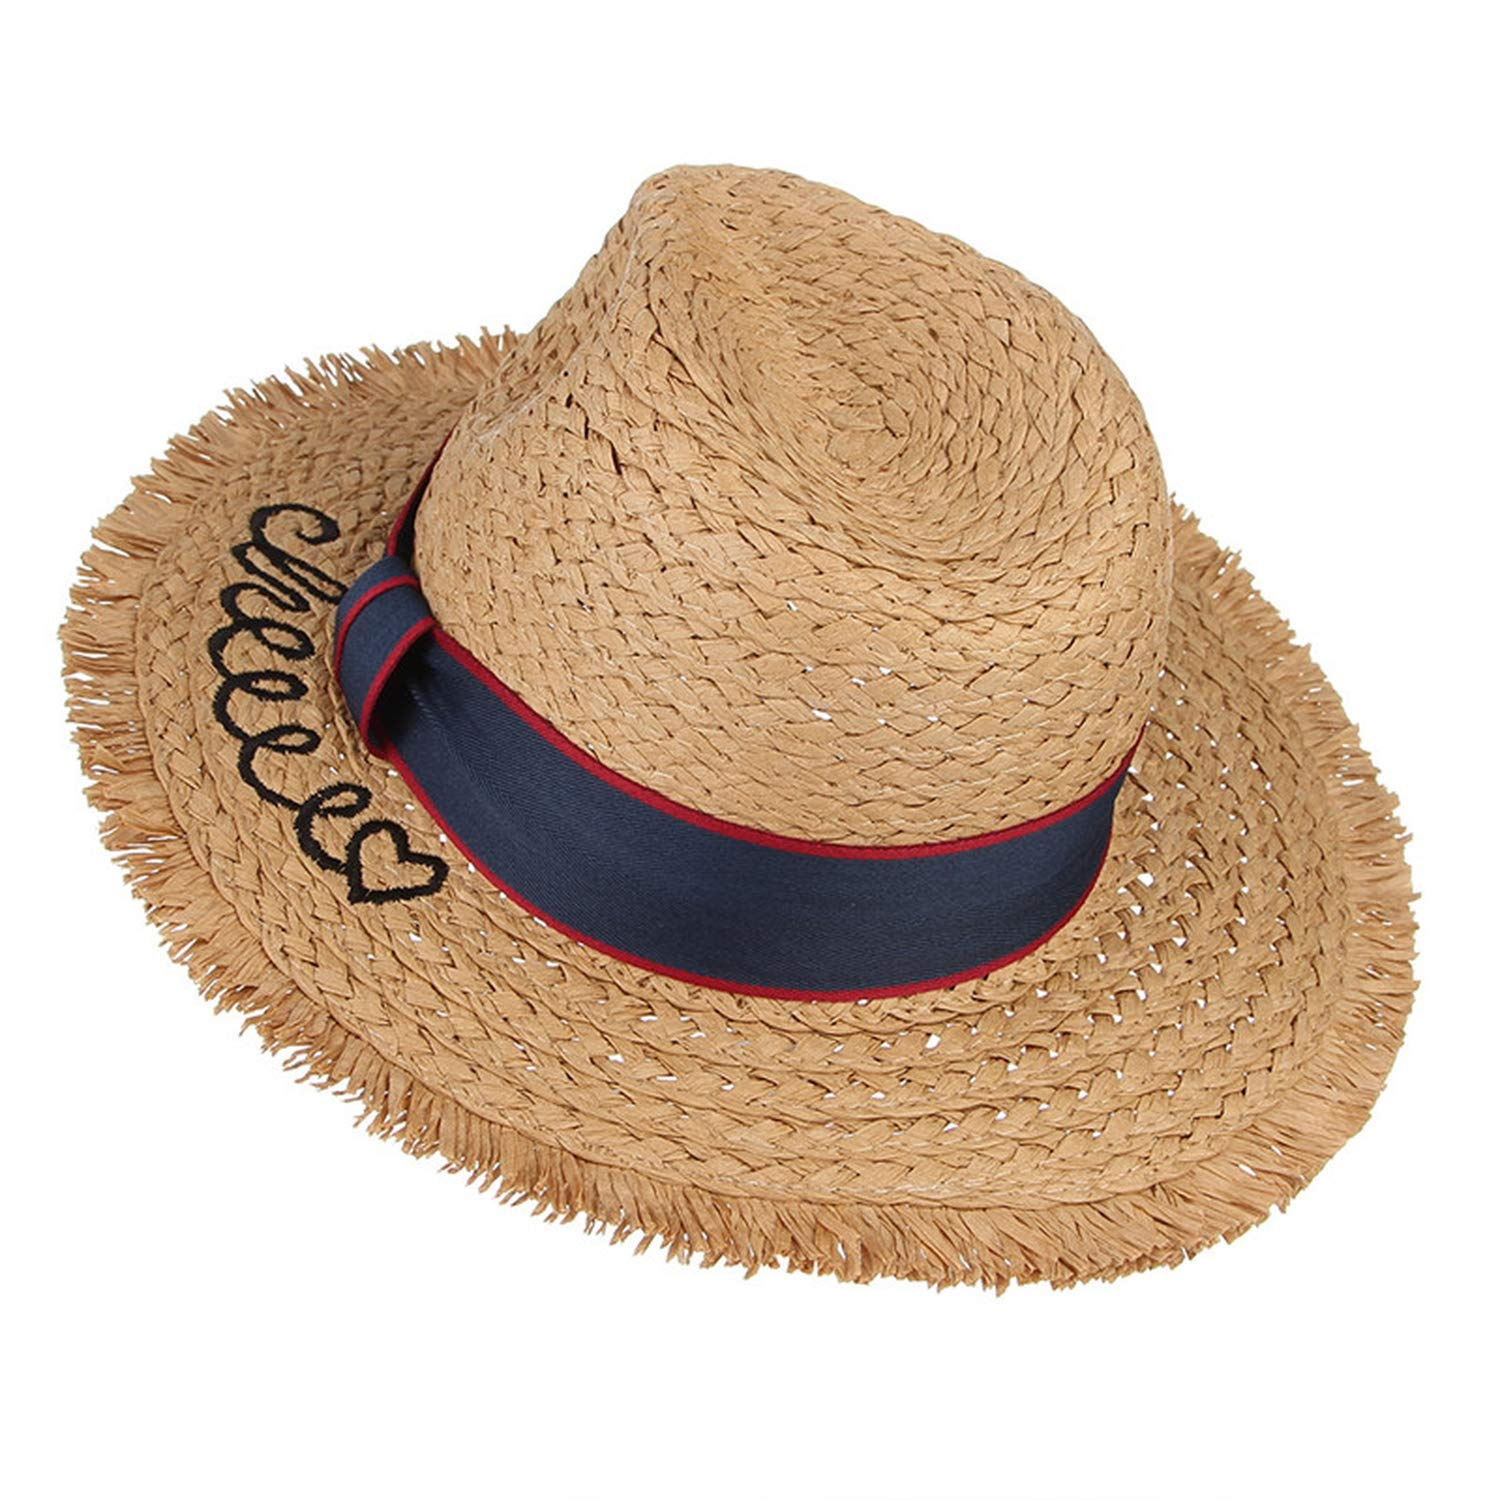 Cute Kids Summer Hat for Boys Girls Wide Brim Straw Hat with Belt Embroidery Letter Sun Hat Outdoor Beach Cap